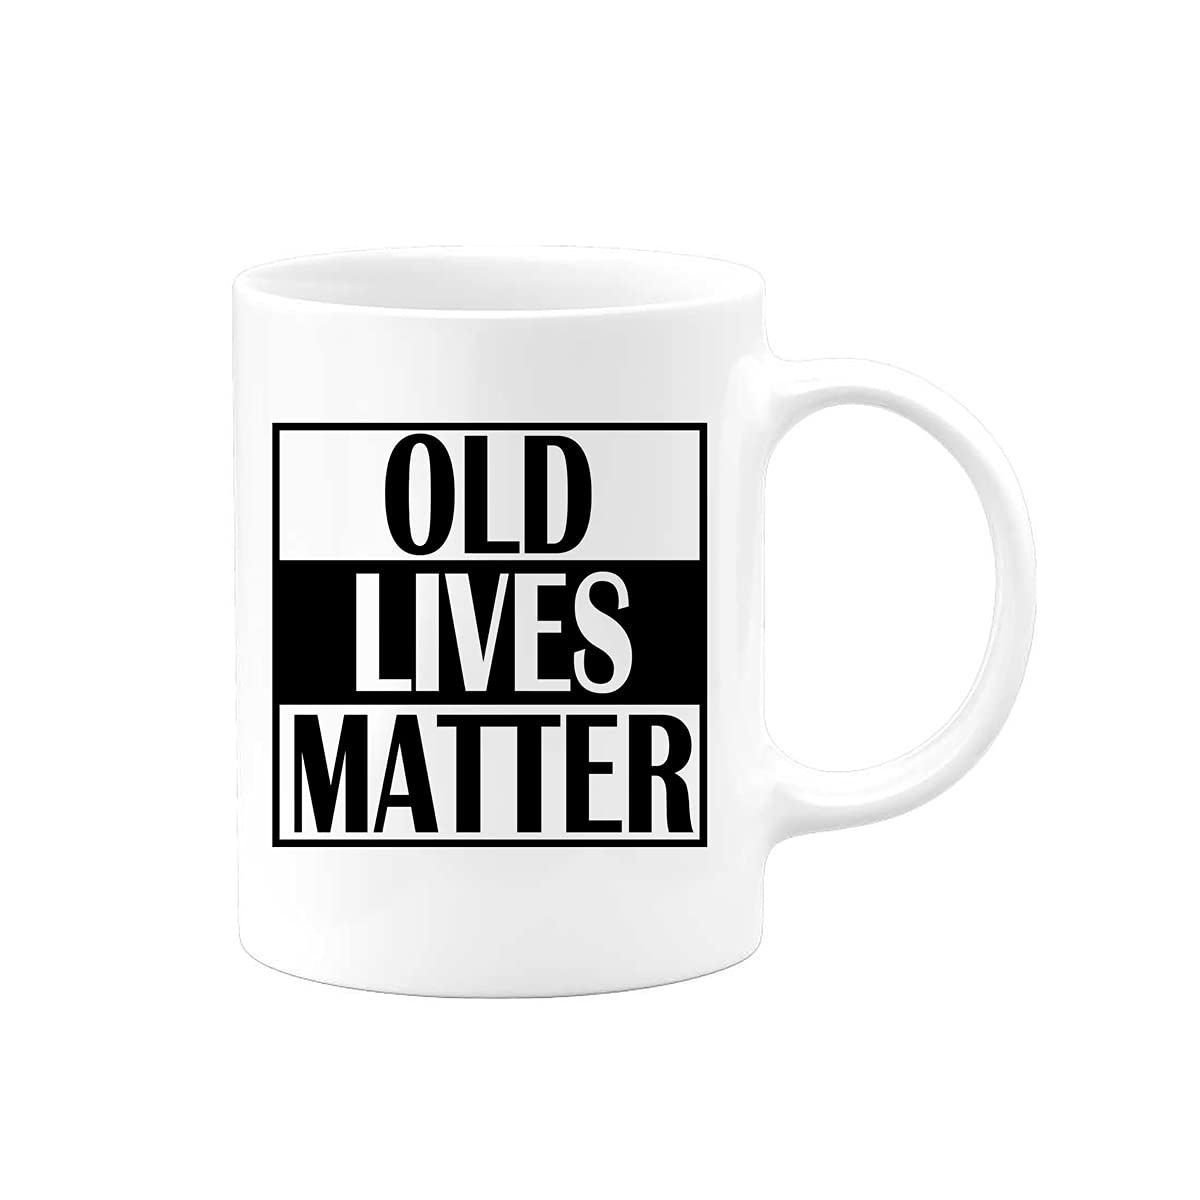 Mother's Day Gifts Fathers Limited Finally popular brand time cheap sale Coffee Mom For Mug Dad